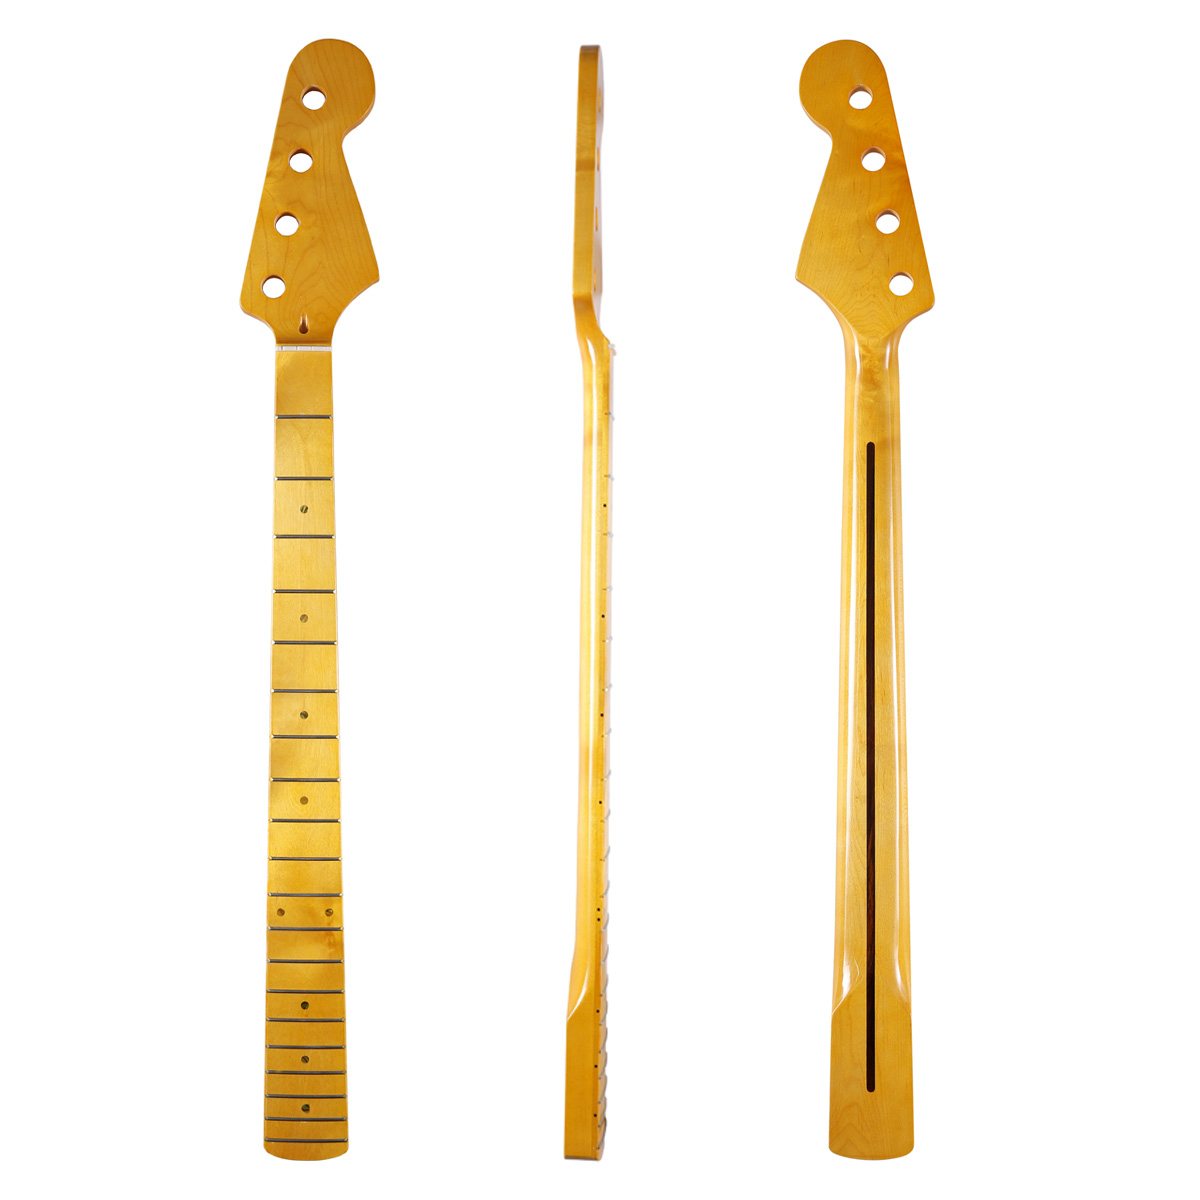 KAISH 20 Fret 4 String P Bass Guitar Canadian Maple Neck with Abalone Shell Inlay and Bone Nut for Precision Bass gold abalone metal bell guitar bass knob for 6mm split shaft 3pcs